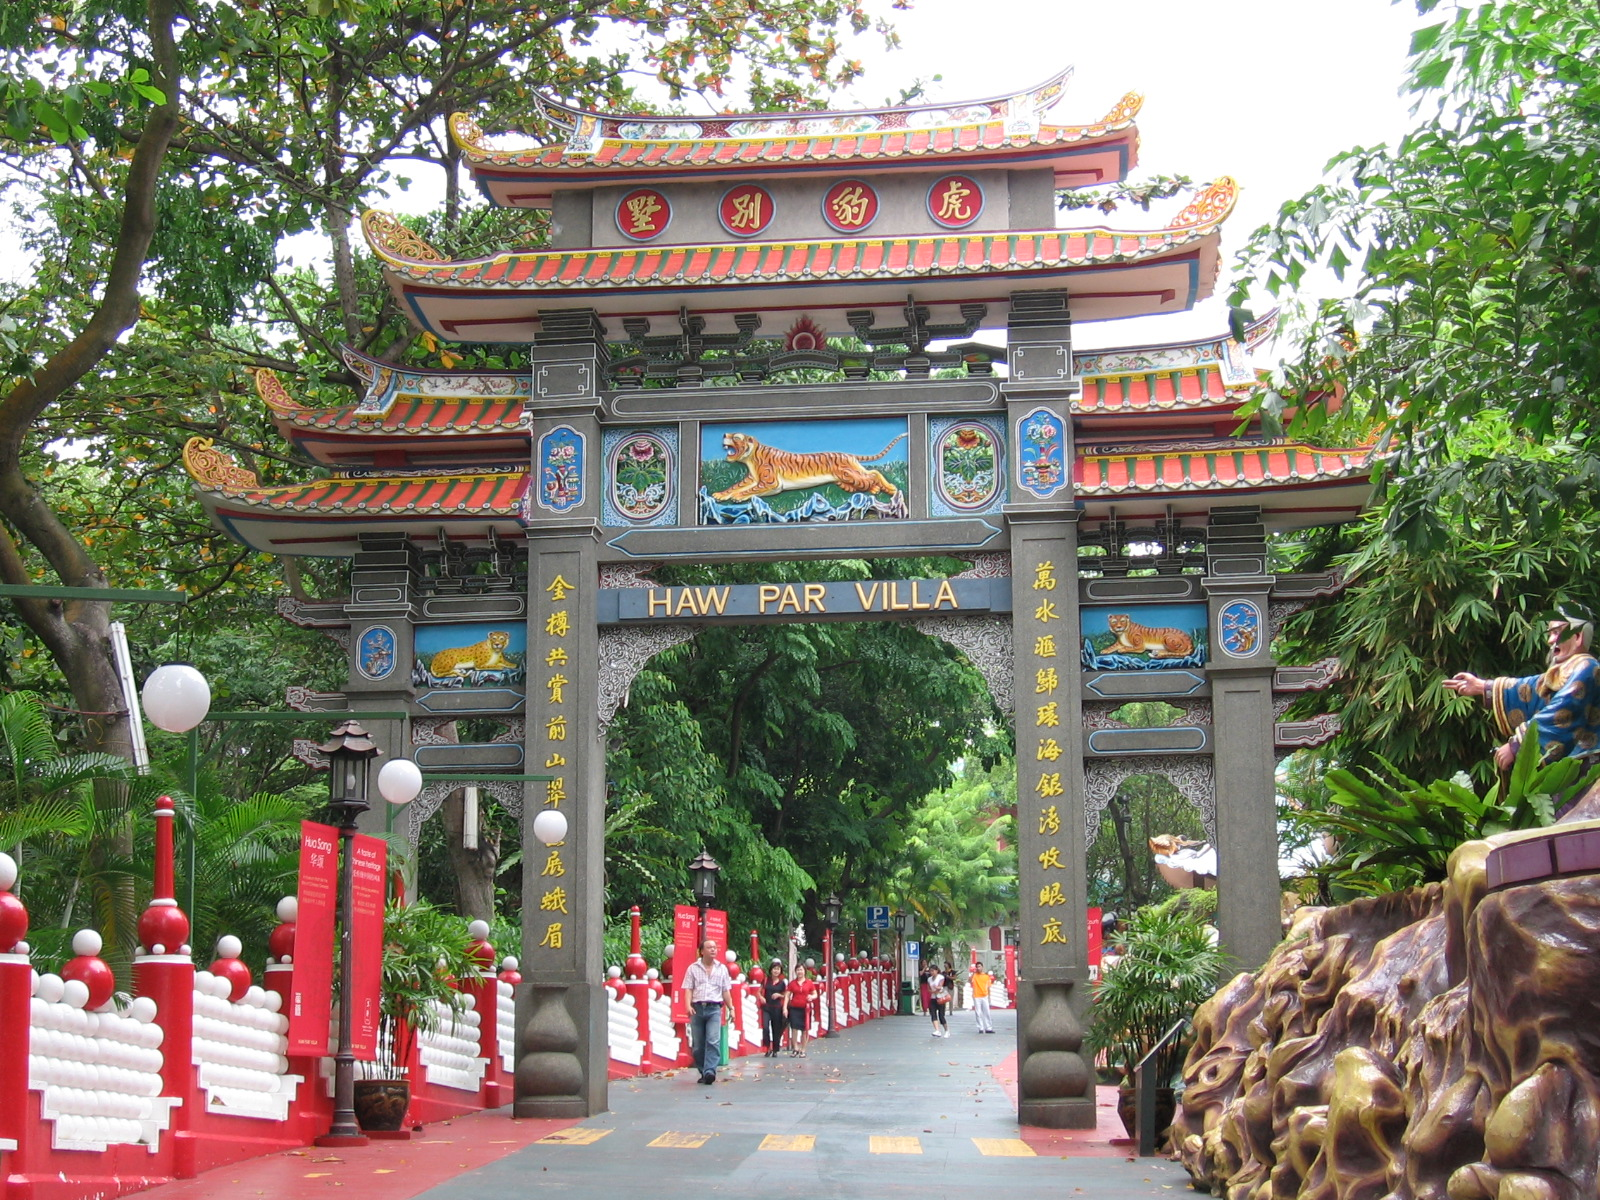 File:Haw Par Villa 11, Nov 06.JPG - Wikipedia, the free encyclopedia